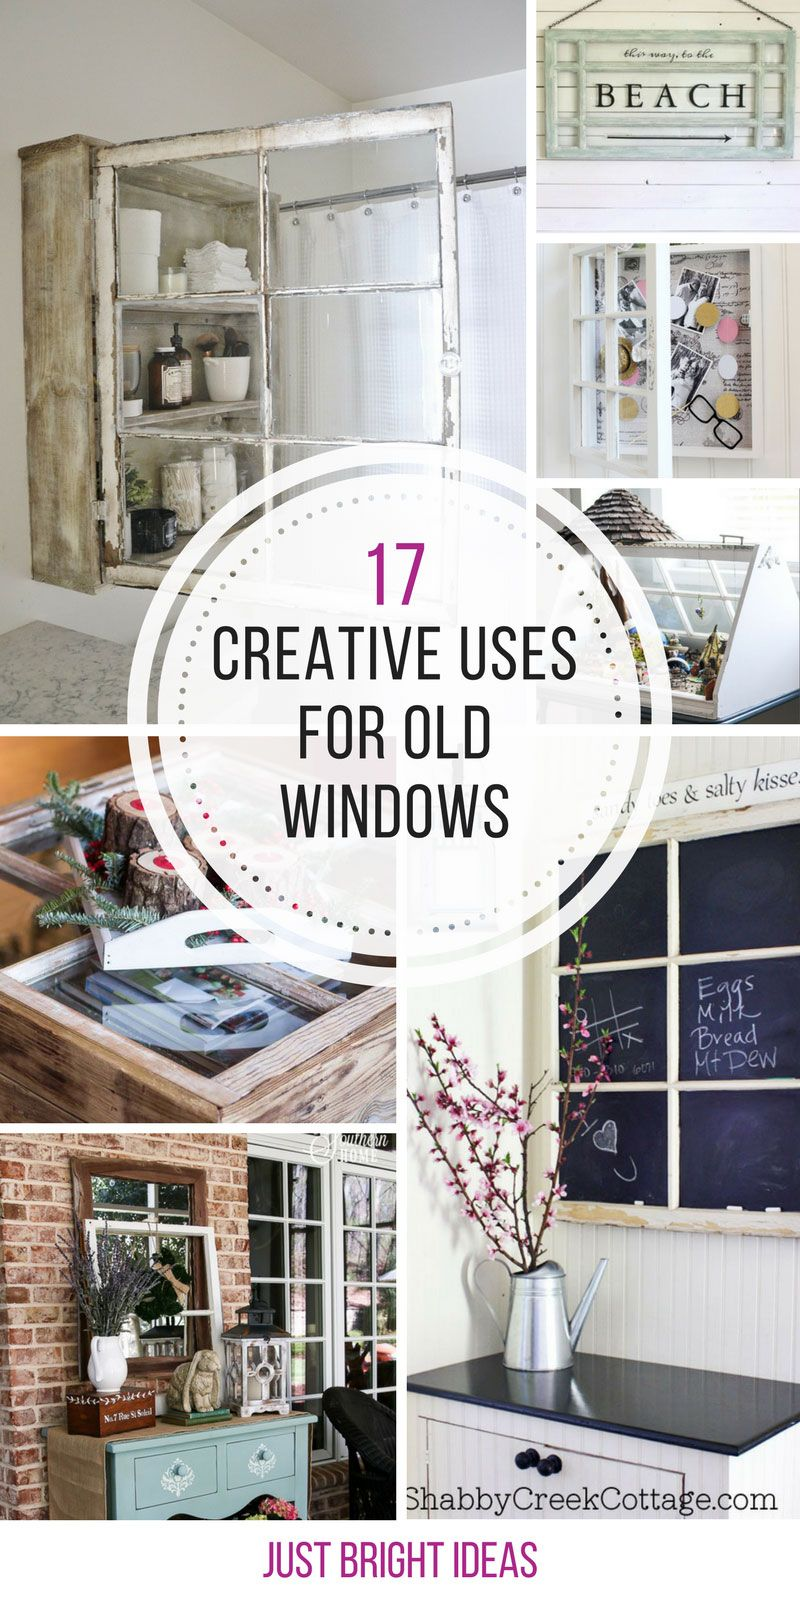 These creative uses for old windows are